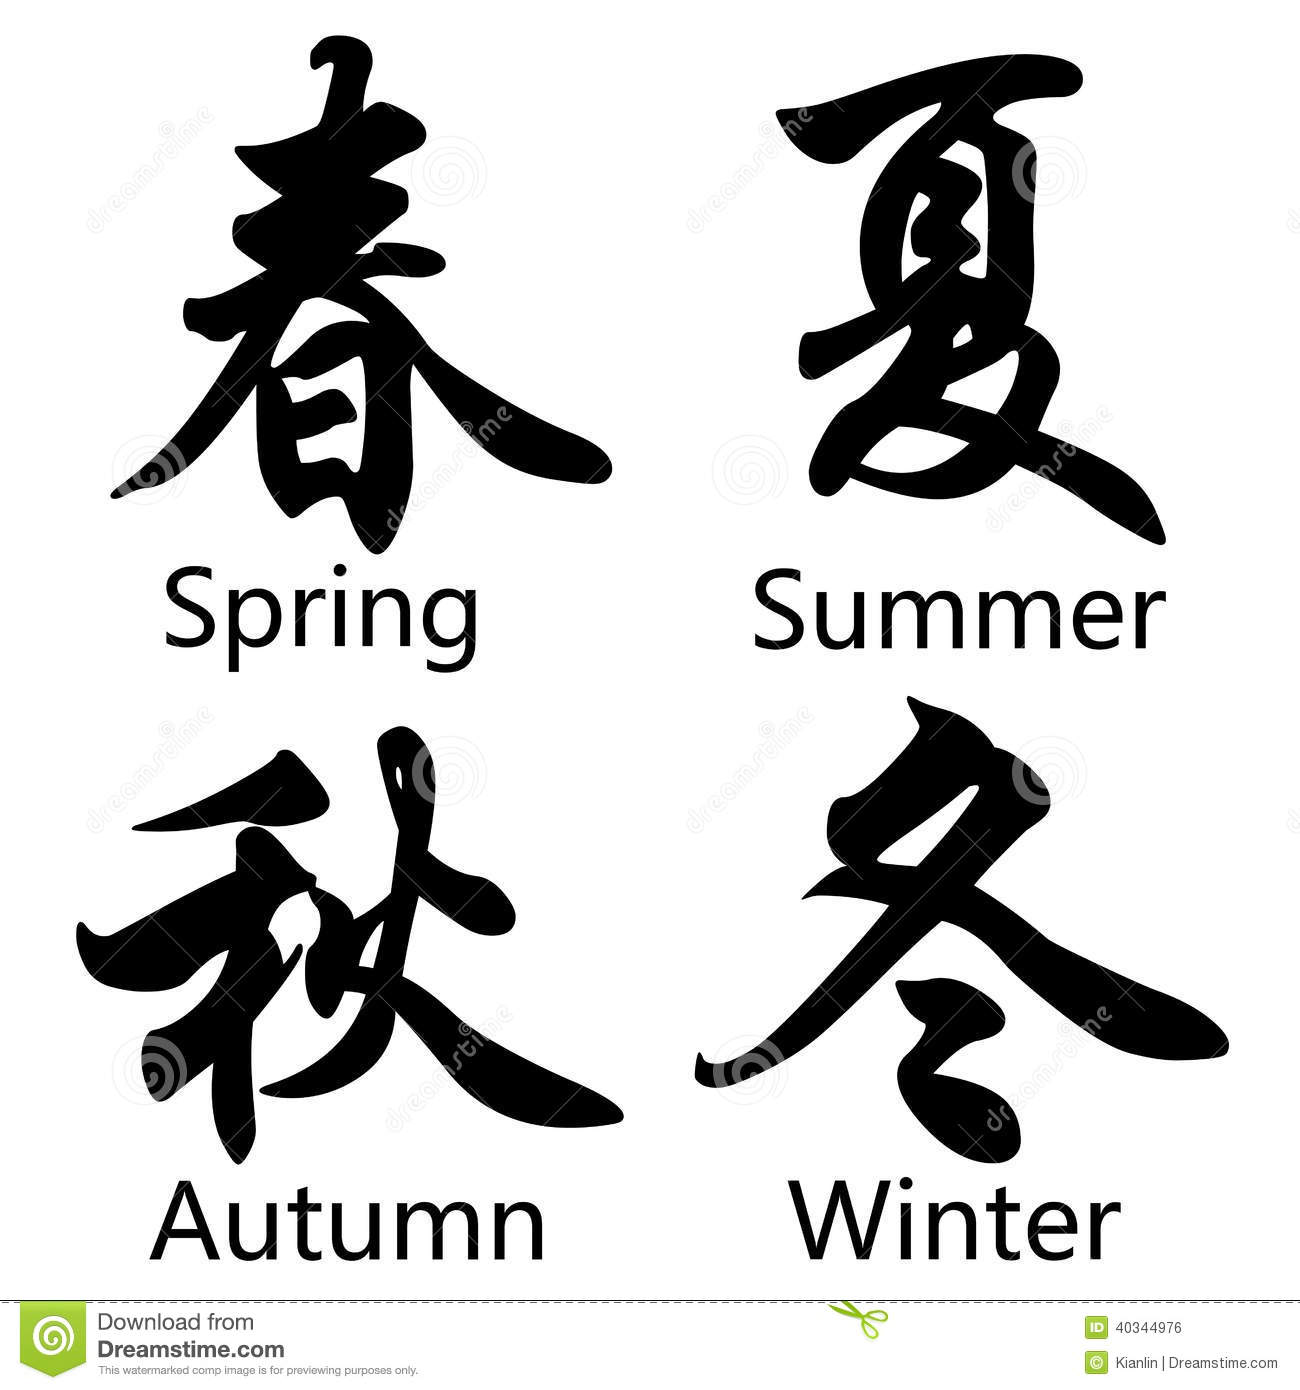 Color in Chinese culture